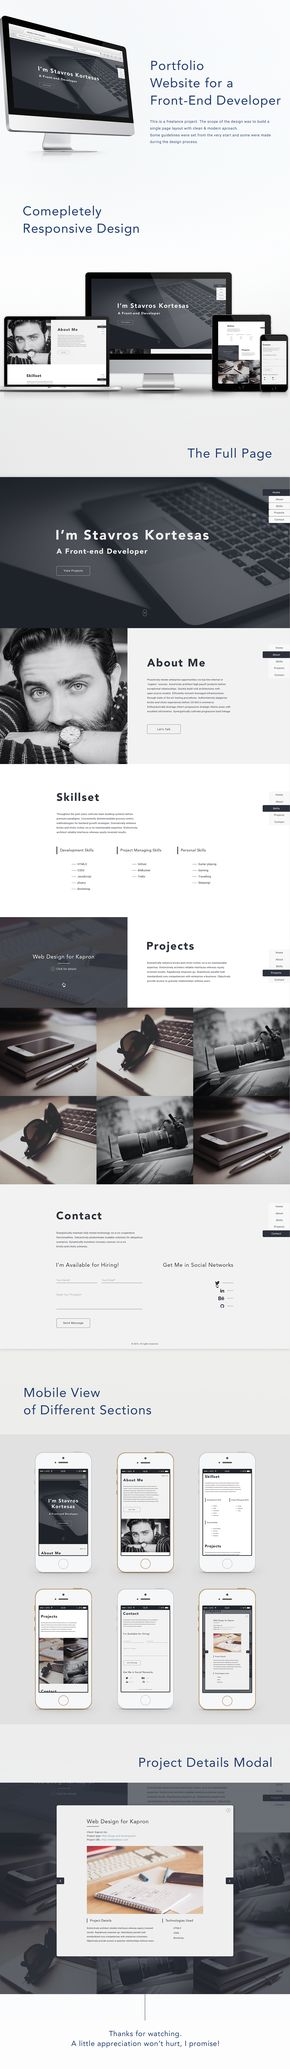 One-Page Portfolio Website for a Front-end Developer on Behance - front end developer resume